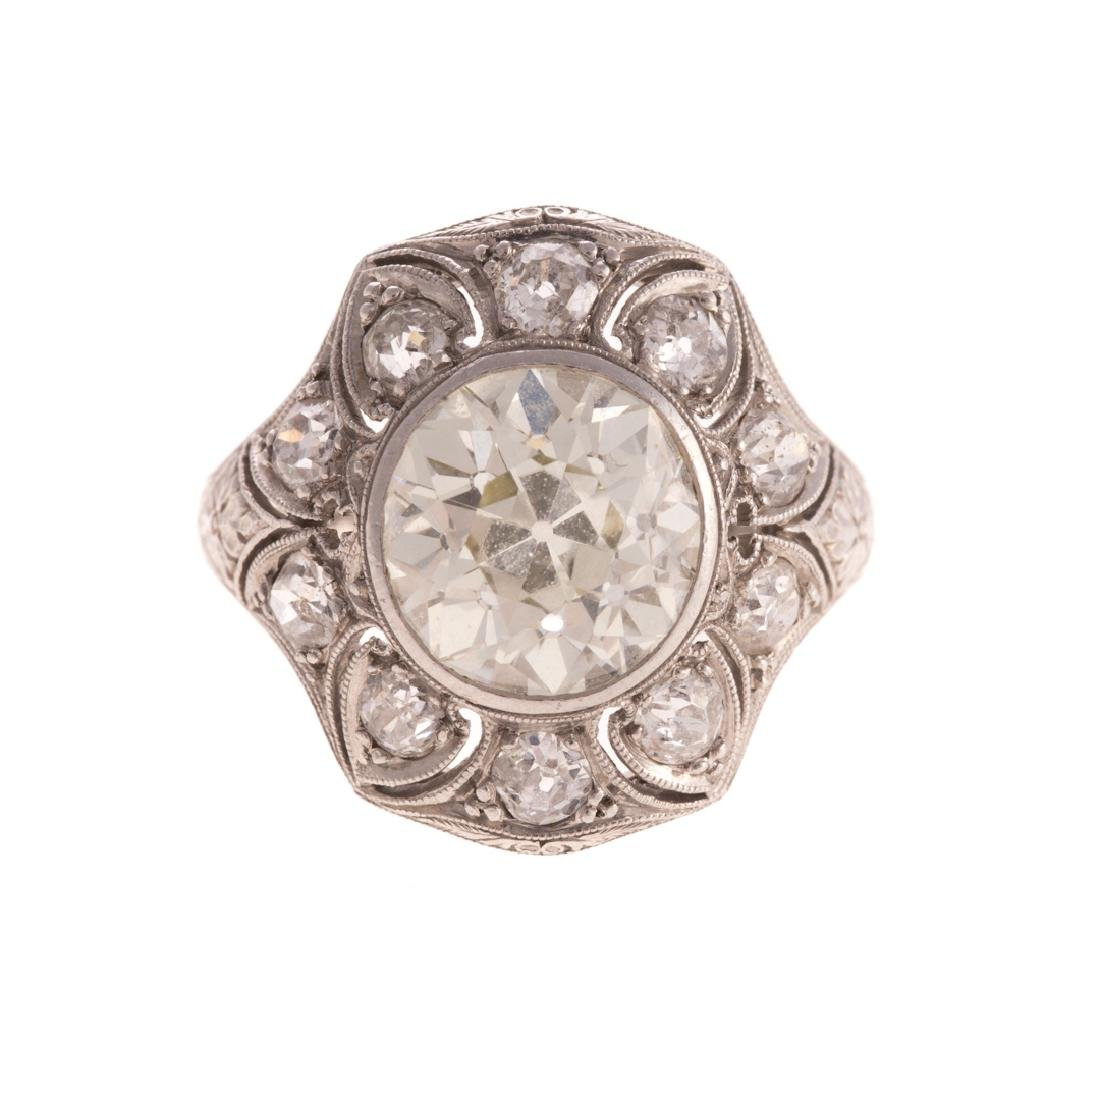 A Lady's 4.51 Diamond Art Deco Ring in Platinum